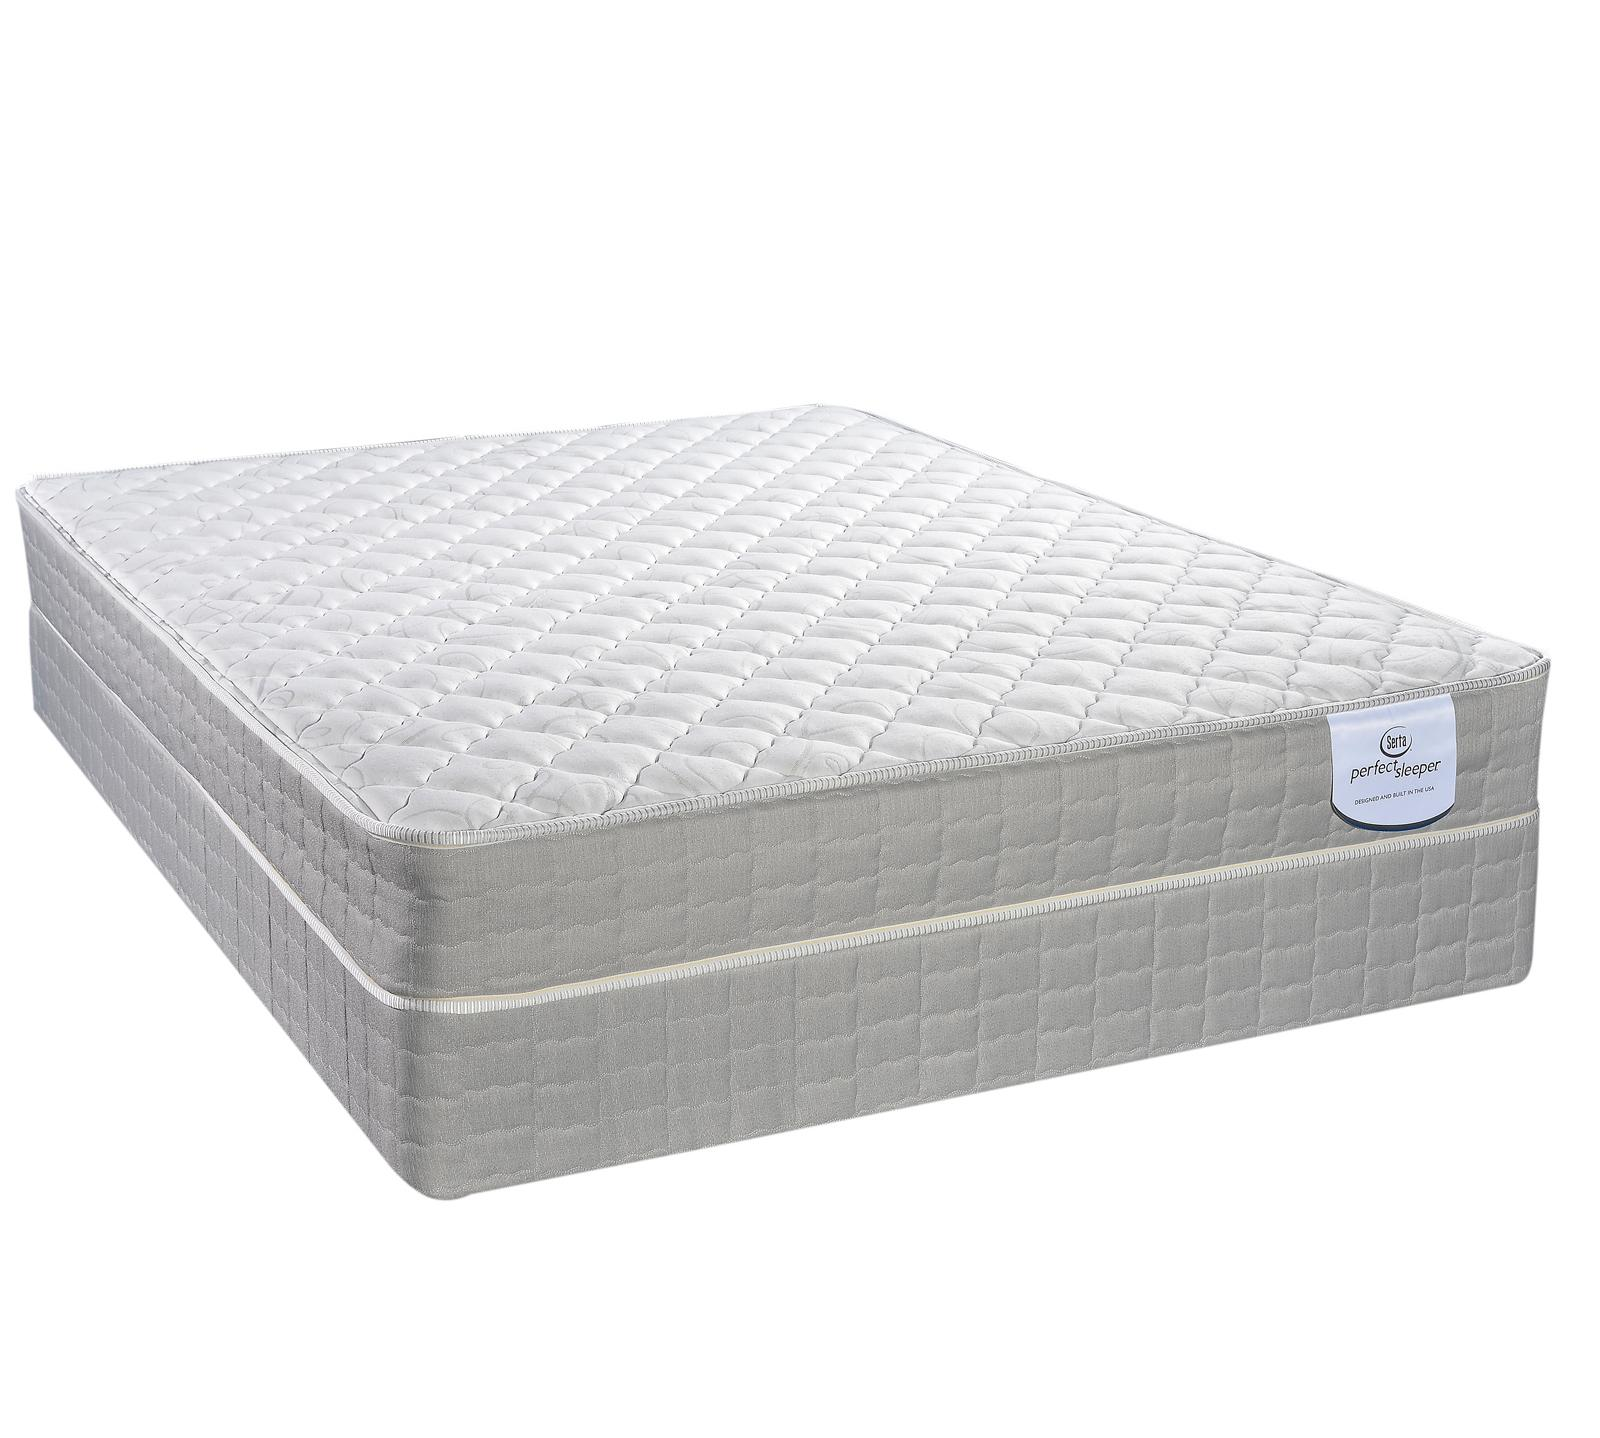 Serta Perfect Sleeper Dunshire Firm Mattress